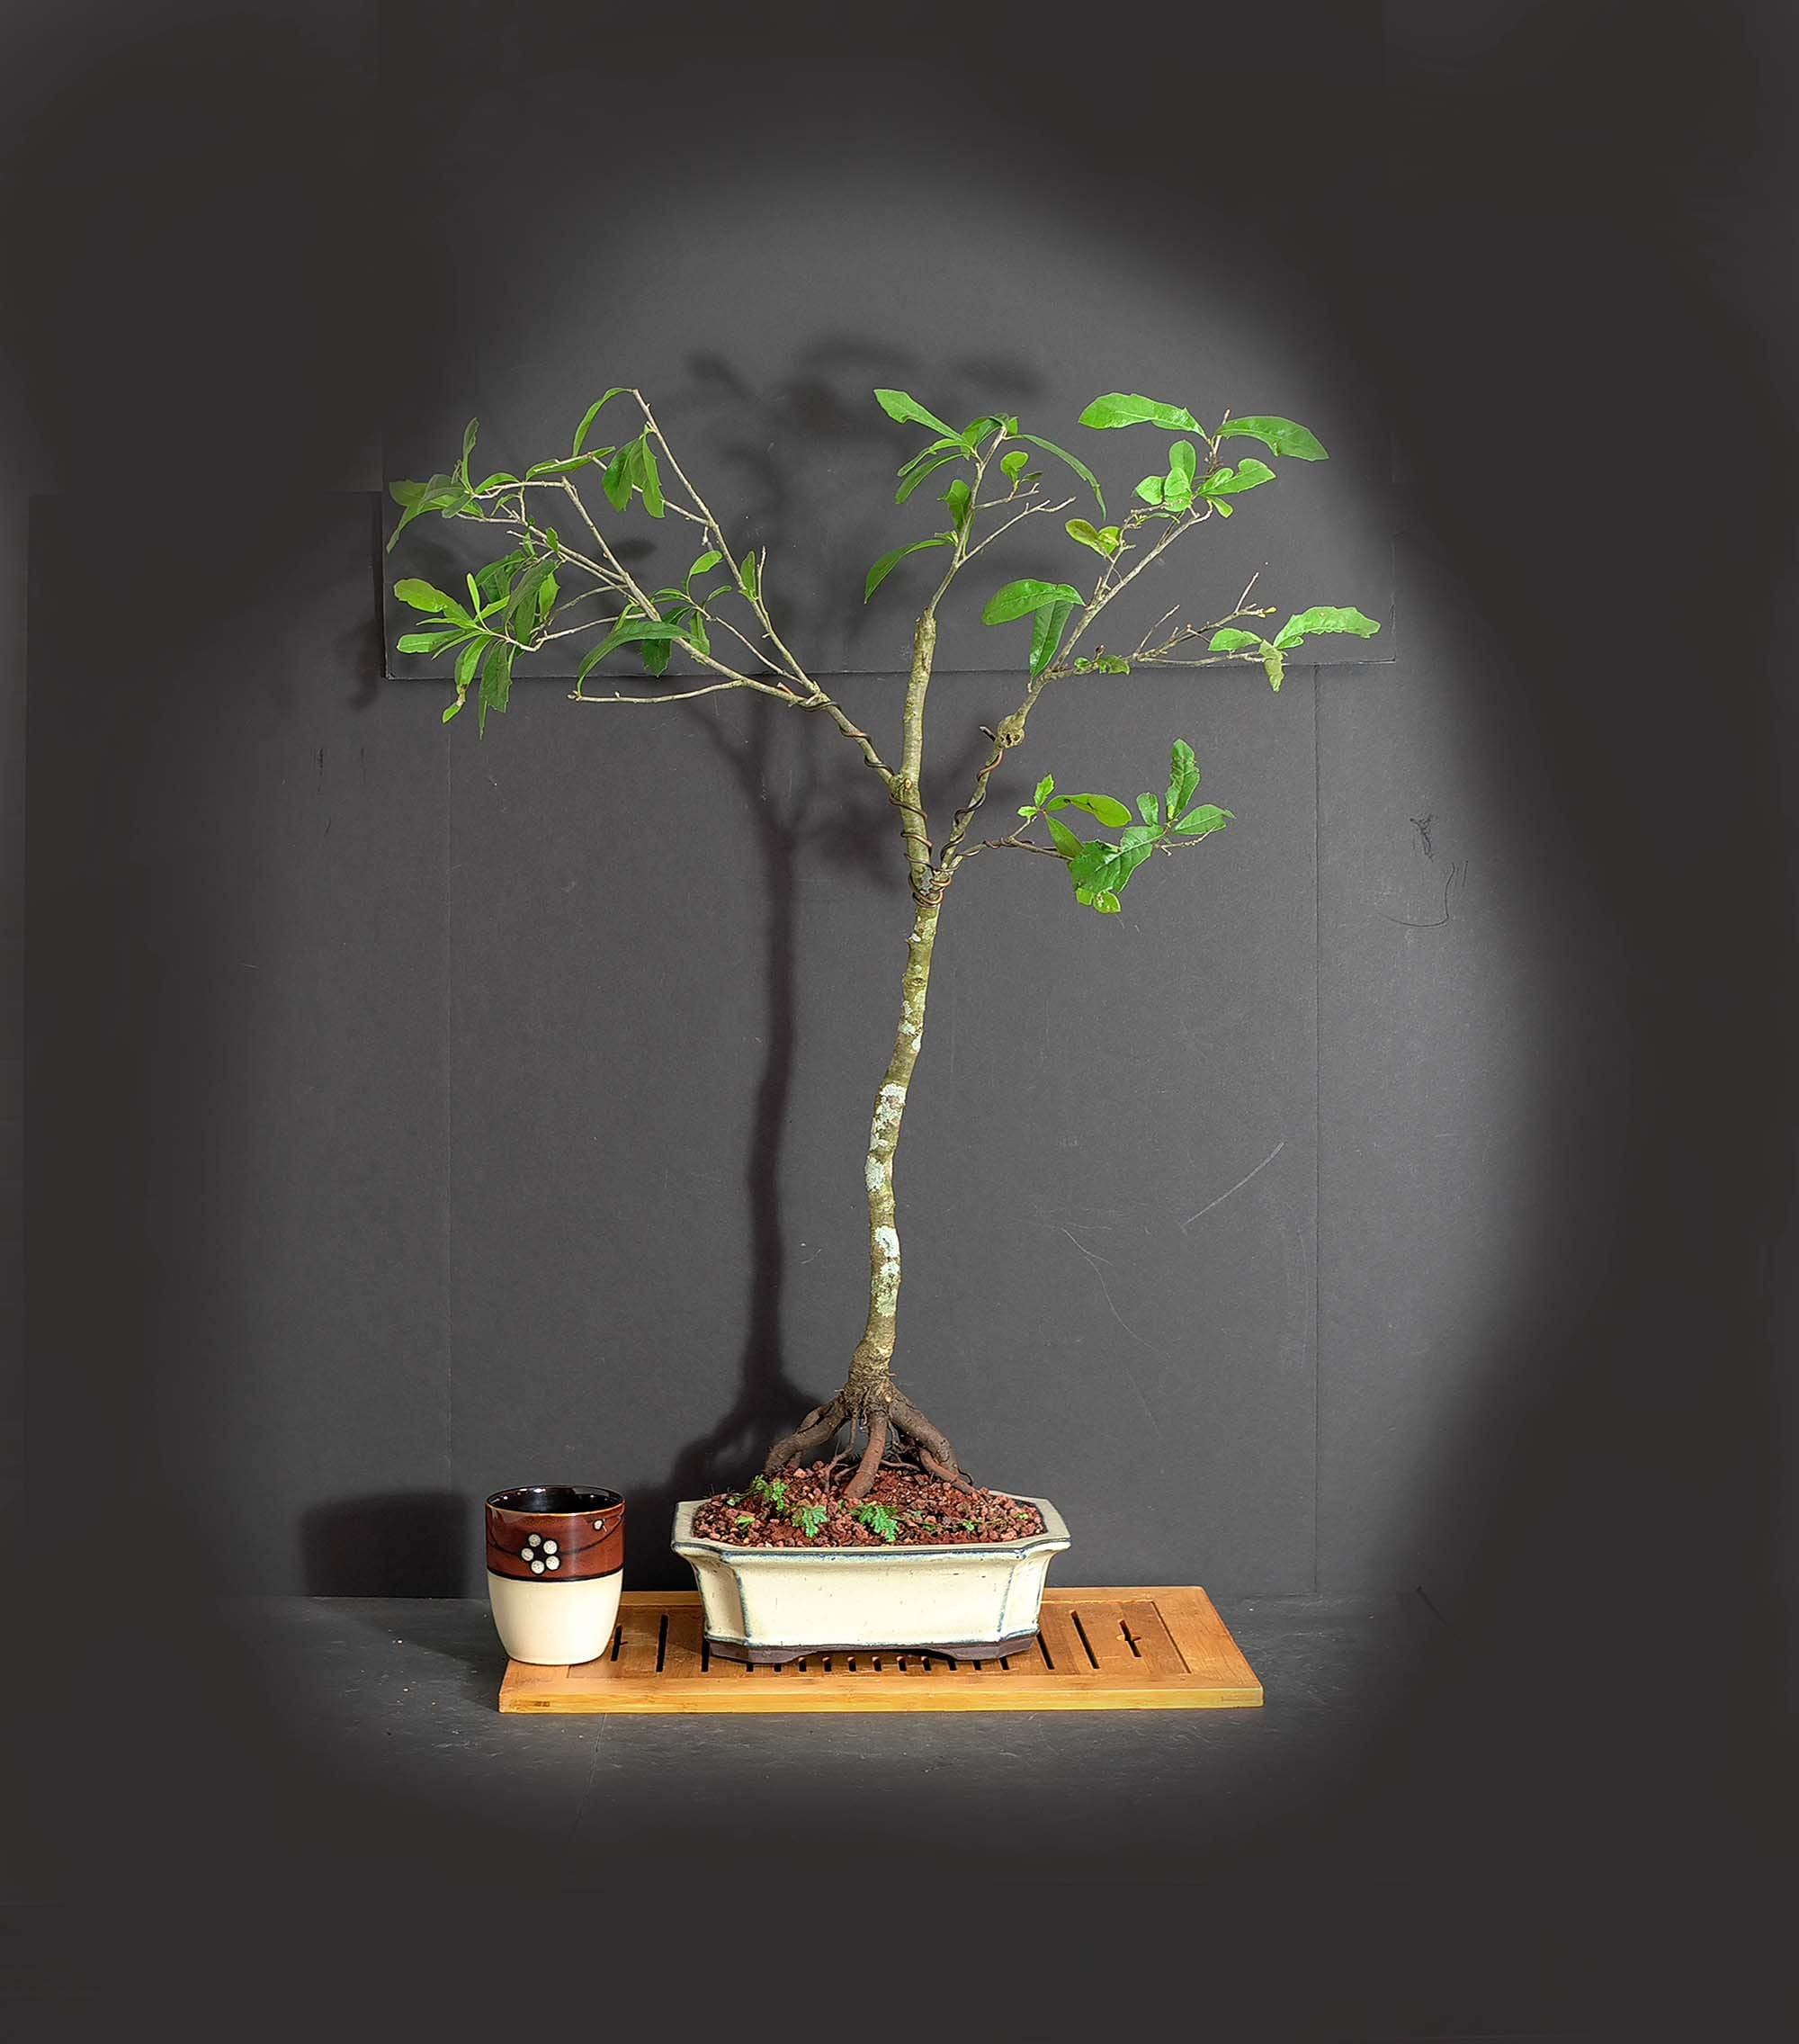 American Live Oak Bonsai Tree Stay At Home Collection From Livebonsaitree